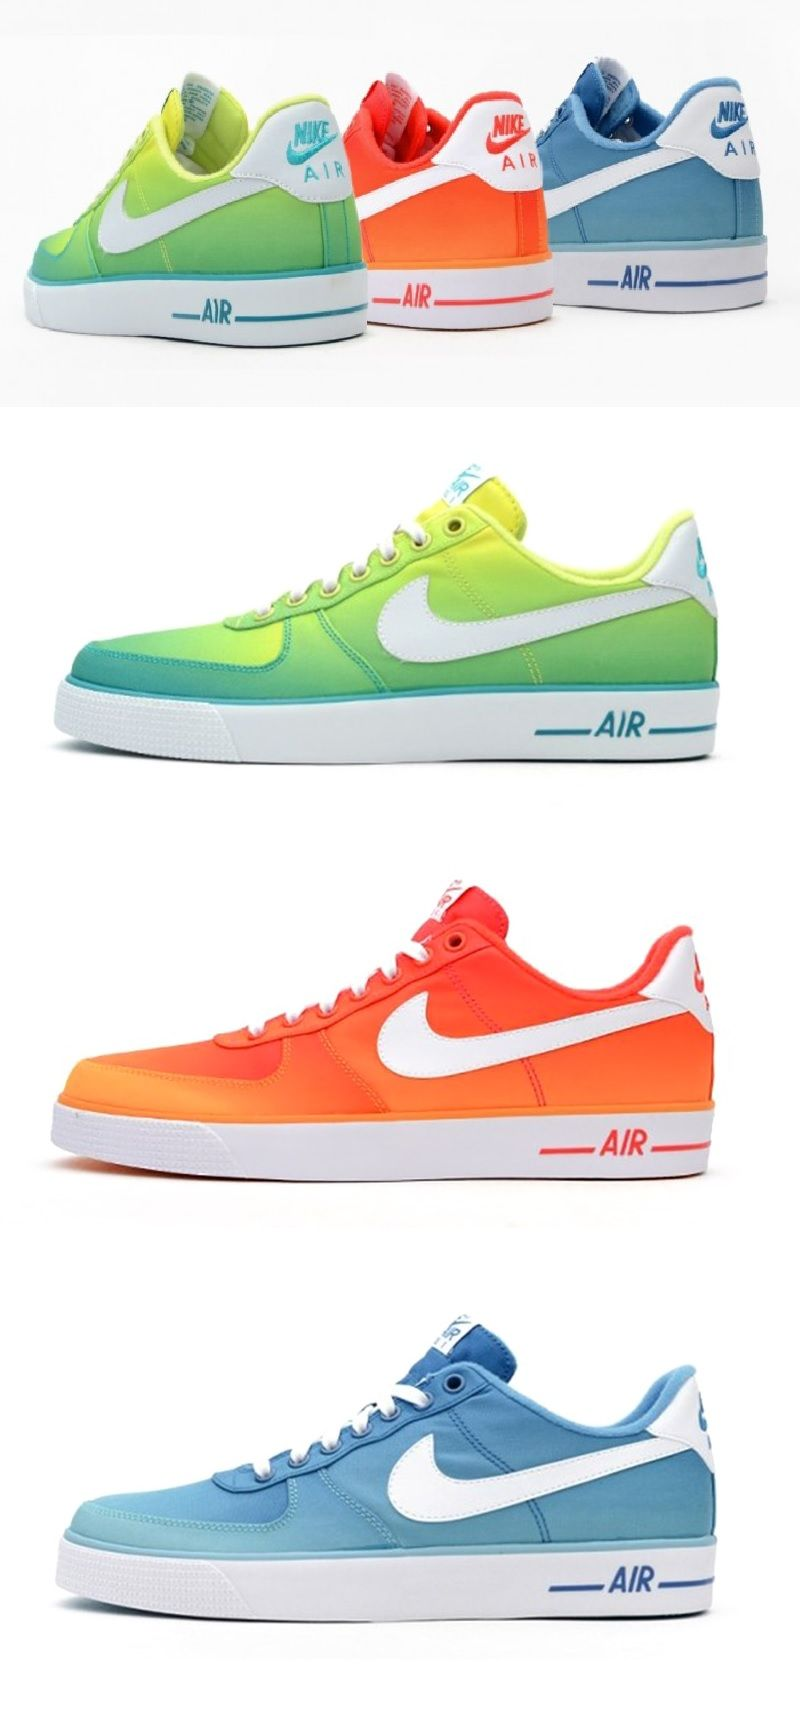 save off 1c32c 6985a Nike Air Force 1 AC  Gradient Pack